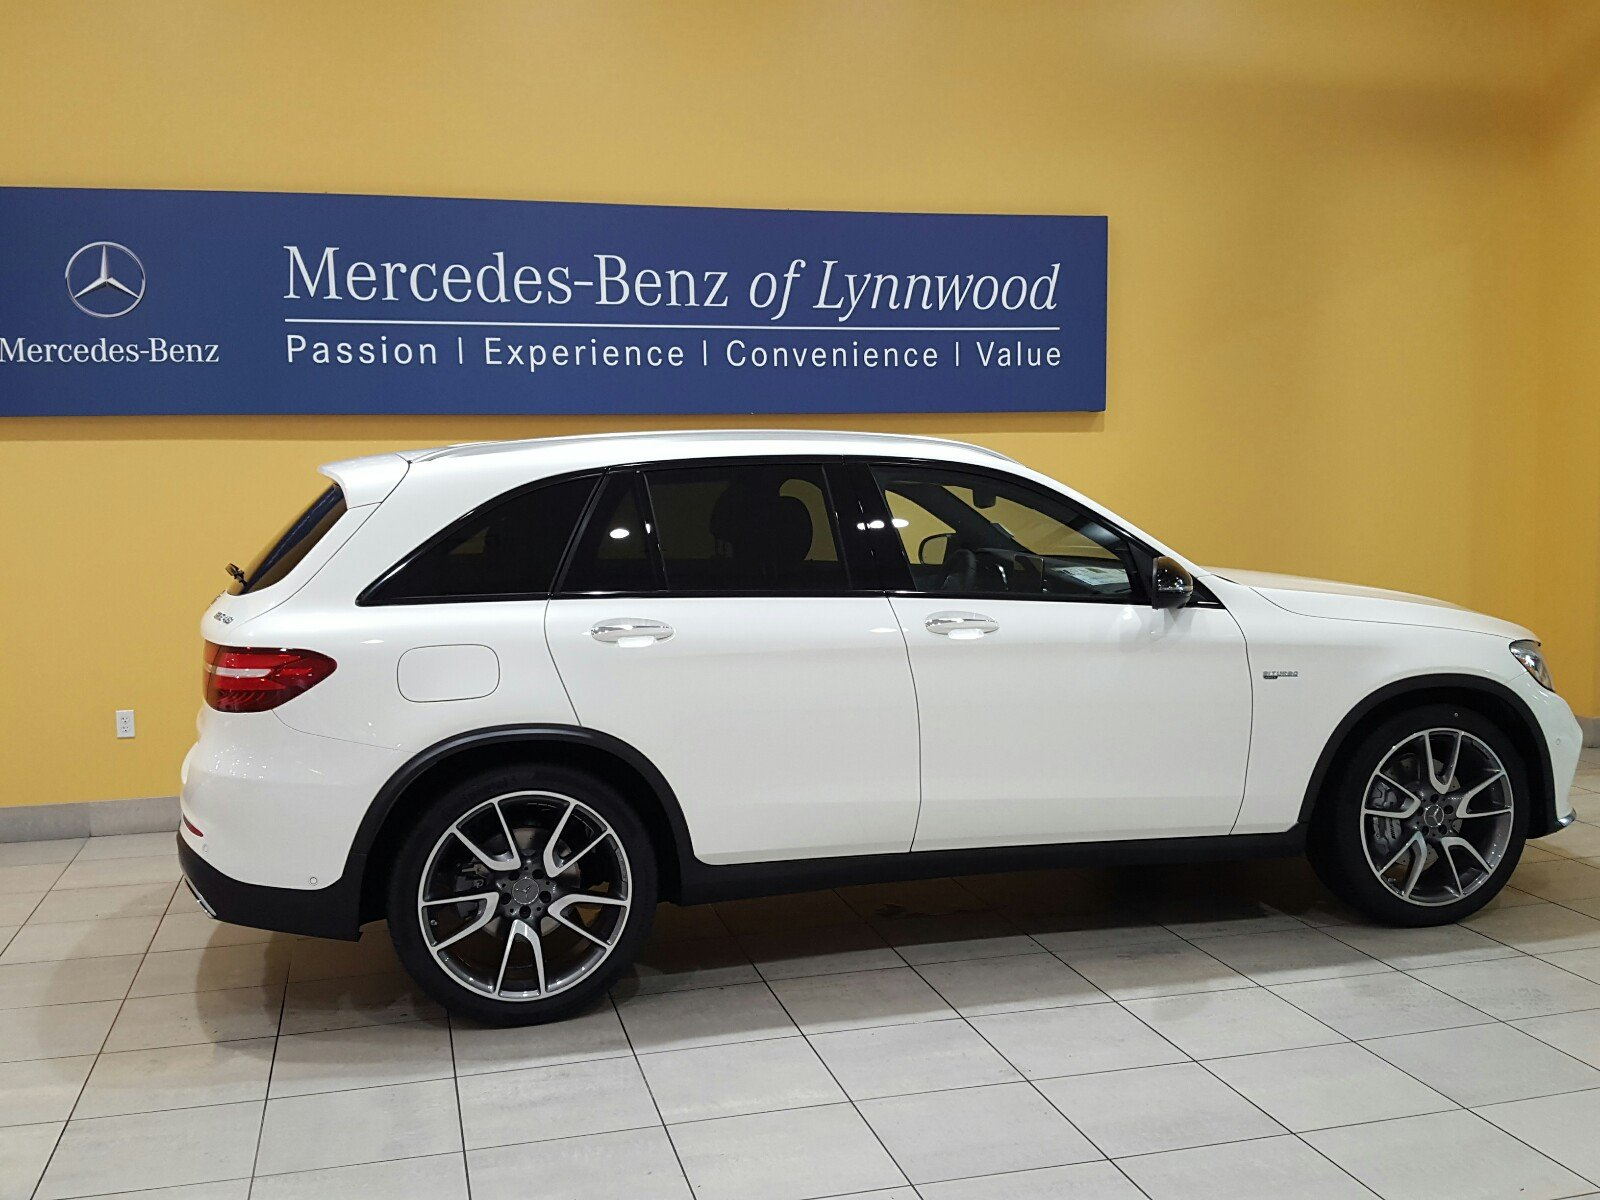 New 2018 mercedes benz glc amg glc 43 4matic suv in for Mercedes benz cpo special offers